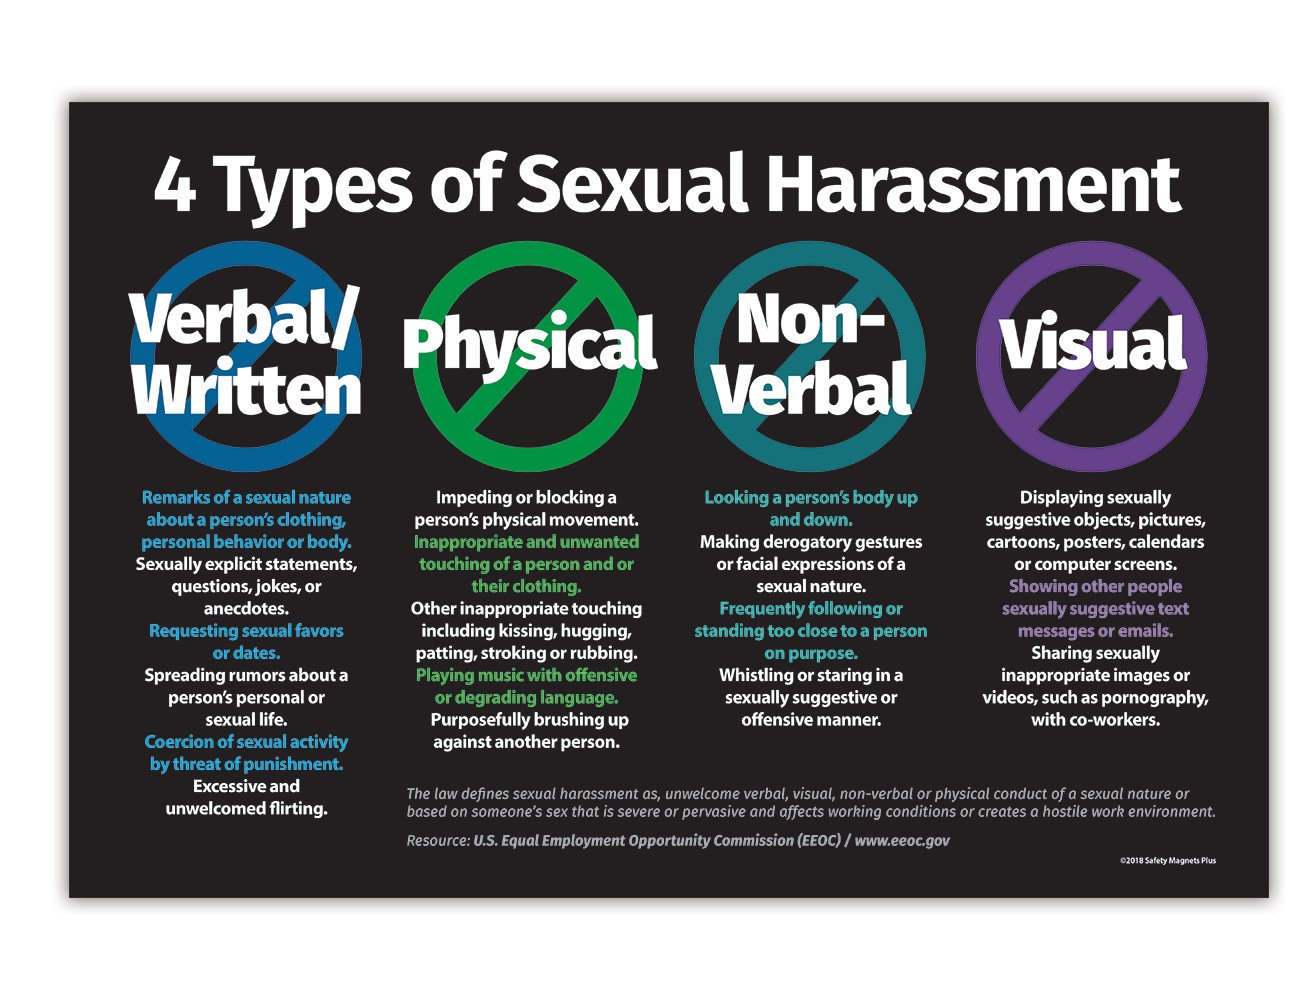 4 Types of Sexual Harassment Workplace Poster - 12 x 18 inches - Laminated  Poster